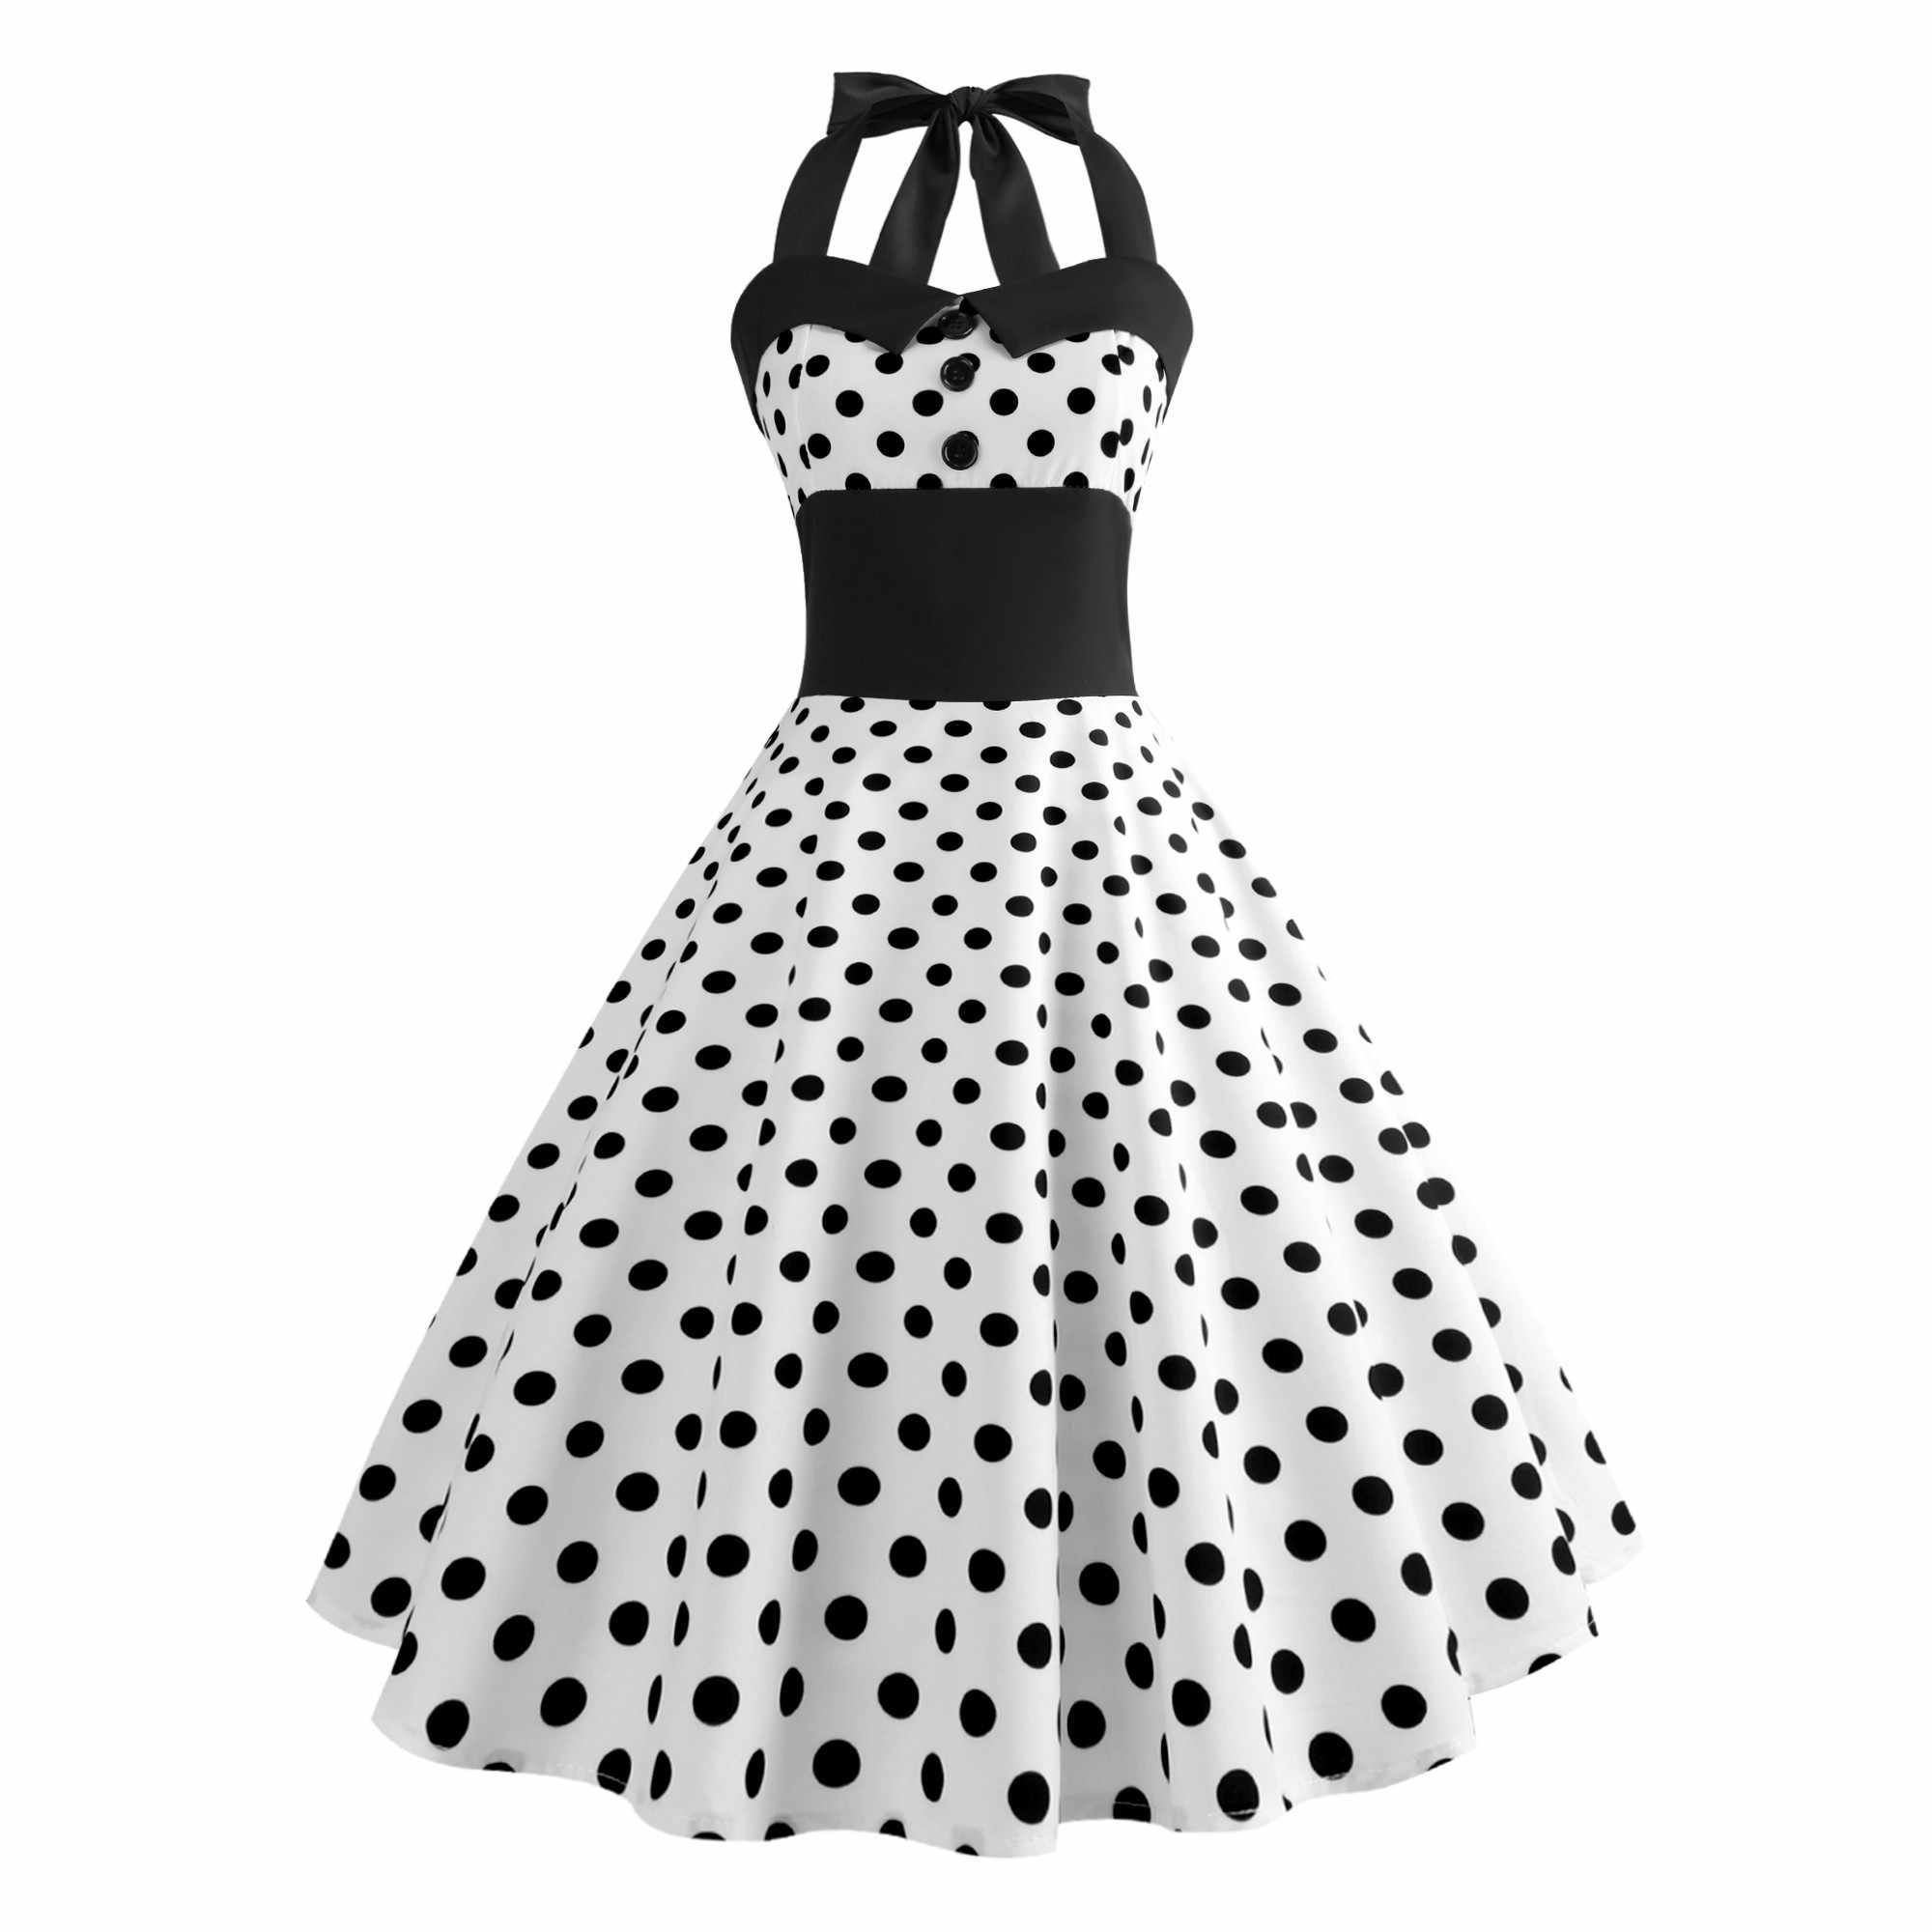 a3dfb32b051d Retro Polka Dot Dress Women Knee-Length Strapless Halter Dress 50s 60s  Gothic Robe Vintage